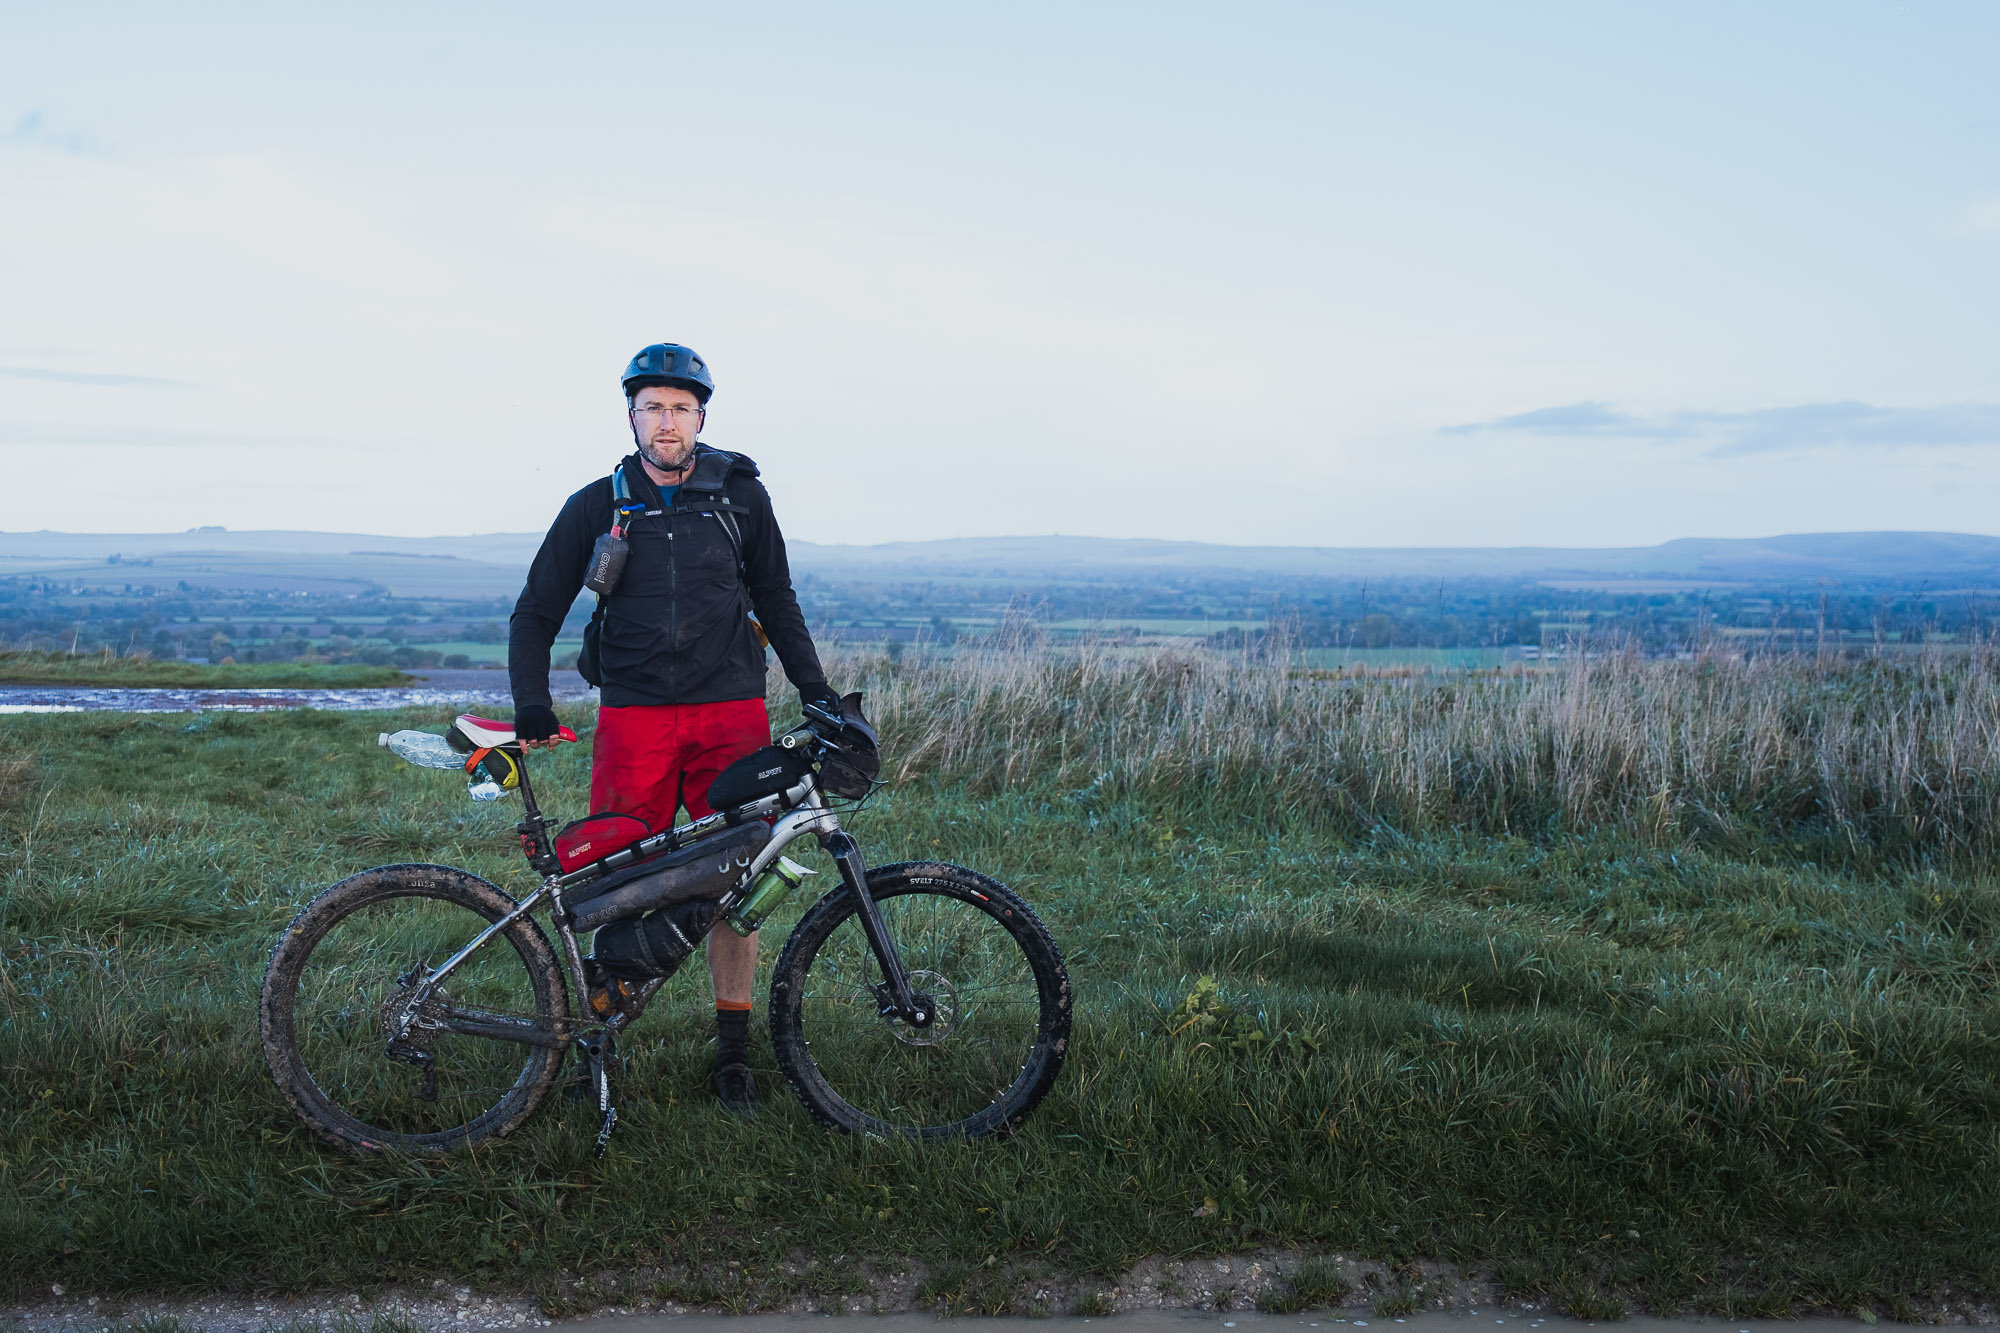 Using my Whyte 901 for Bikepacking with Alpkit bags